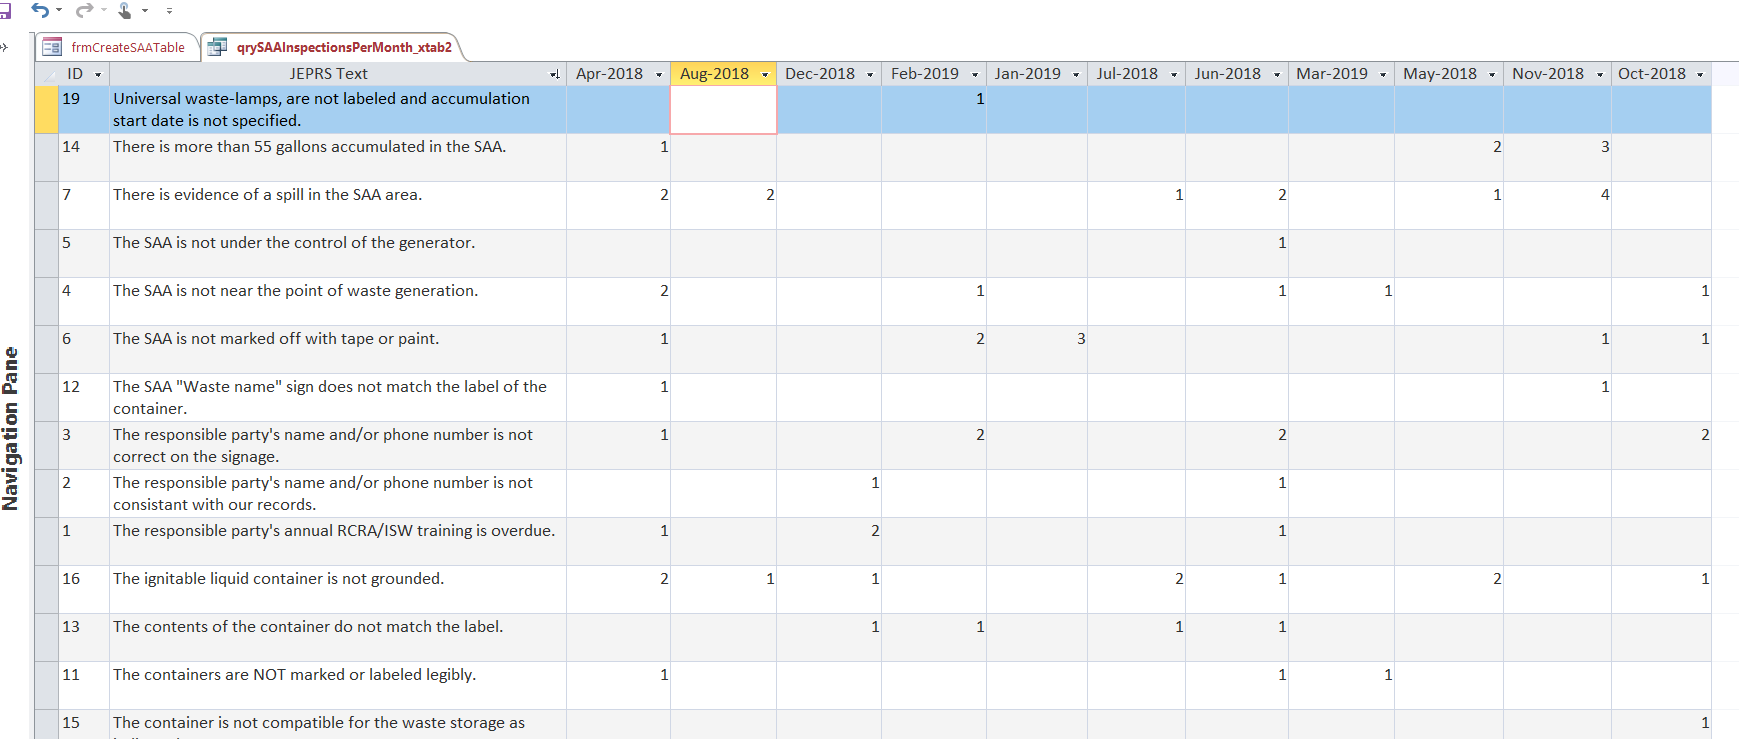 How To Create A MS Access Dynamic Report Based On A Dynamic